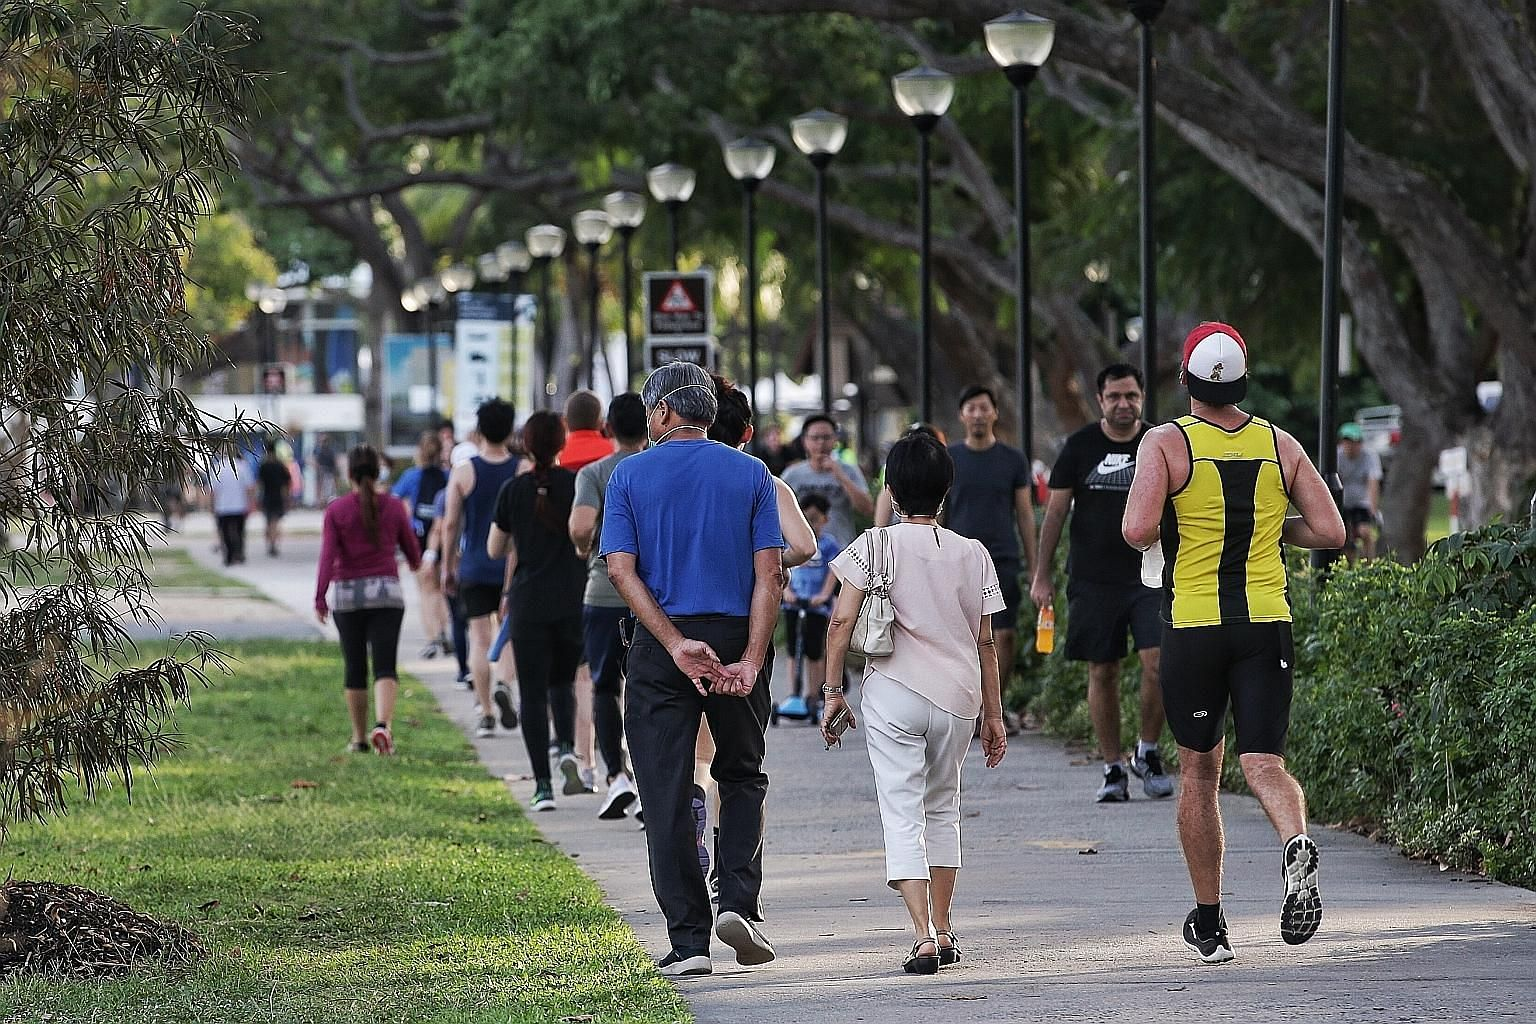 The April 7 to May 4 circuit breaker was launched in Singapore to stem the spread of Covid-19. People have to stay home unless they need to go out for essential activities, like buying food and exercising outdoors, as seen in this picture taken at Ea